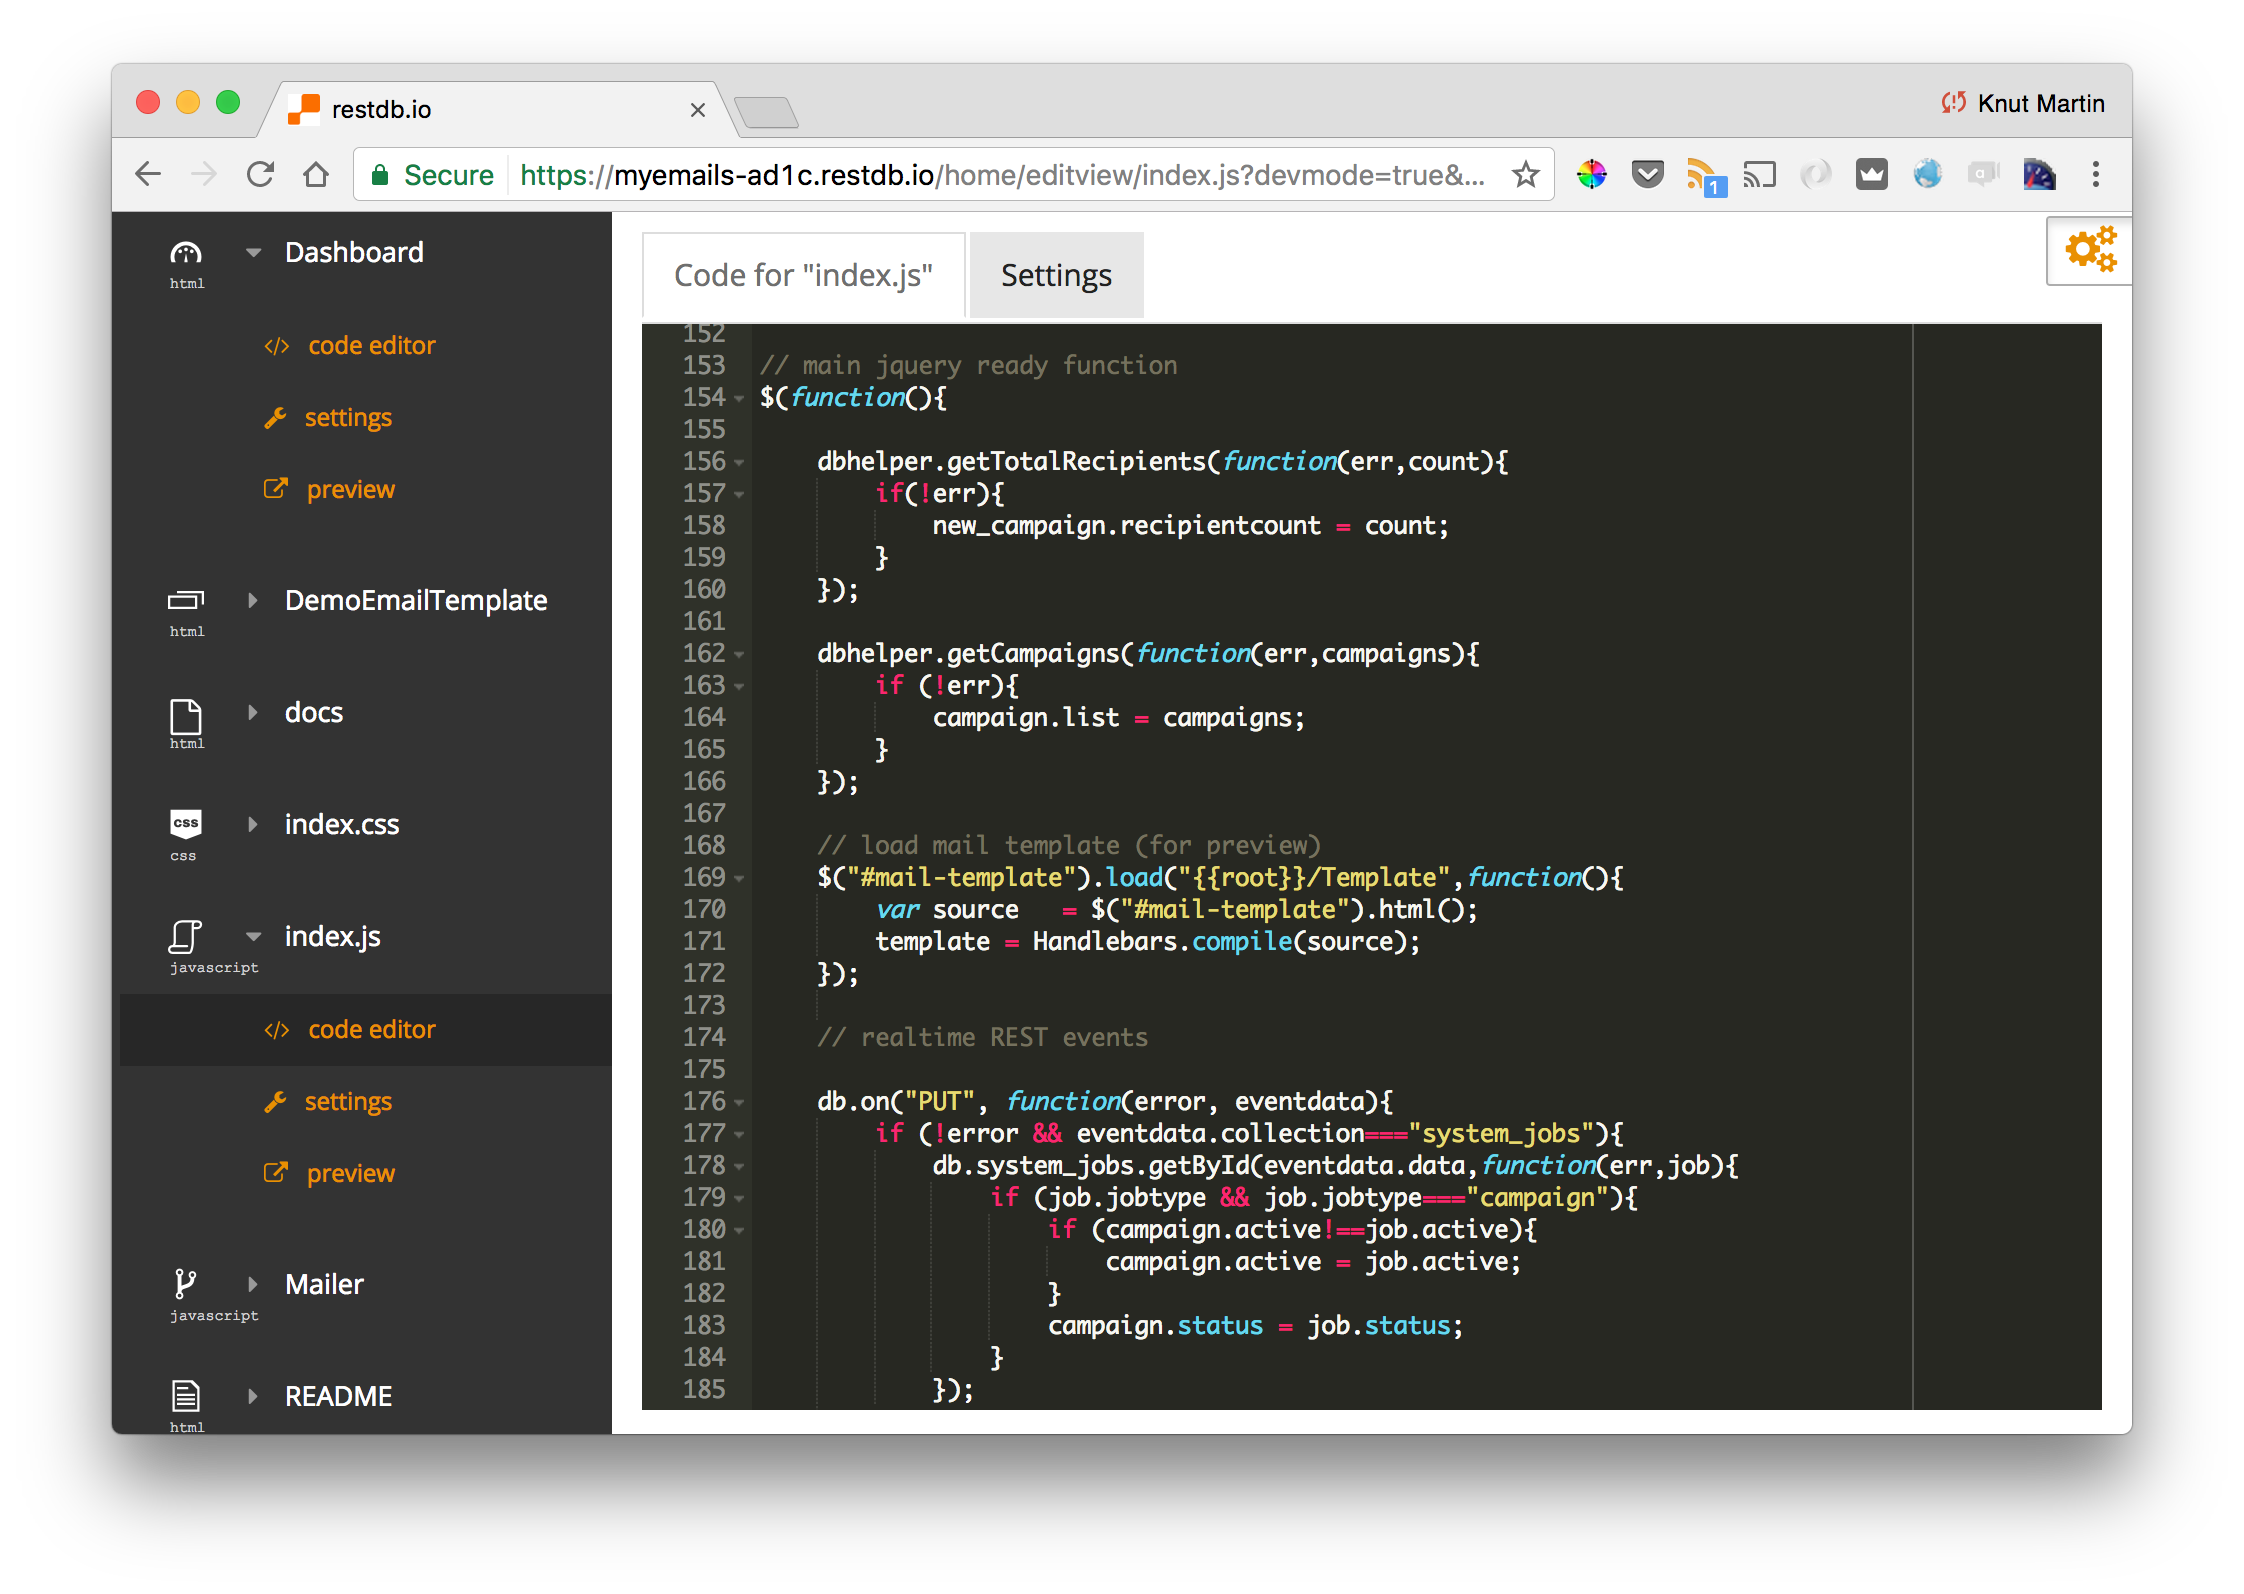 Viewing the Javascript client code